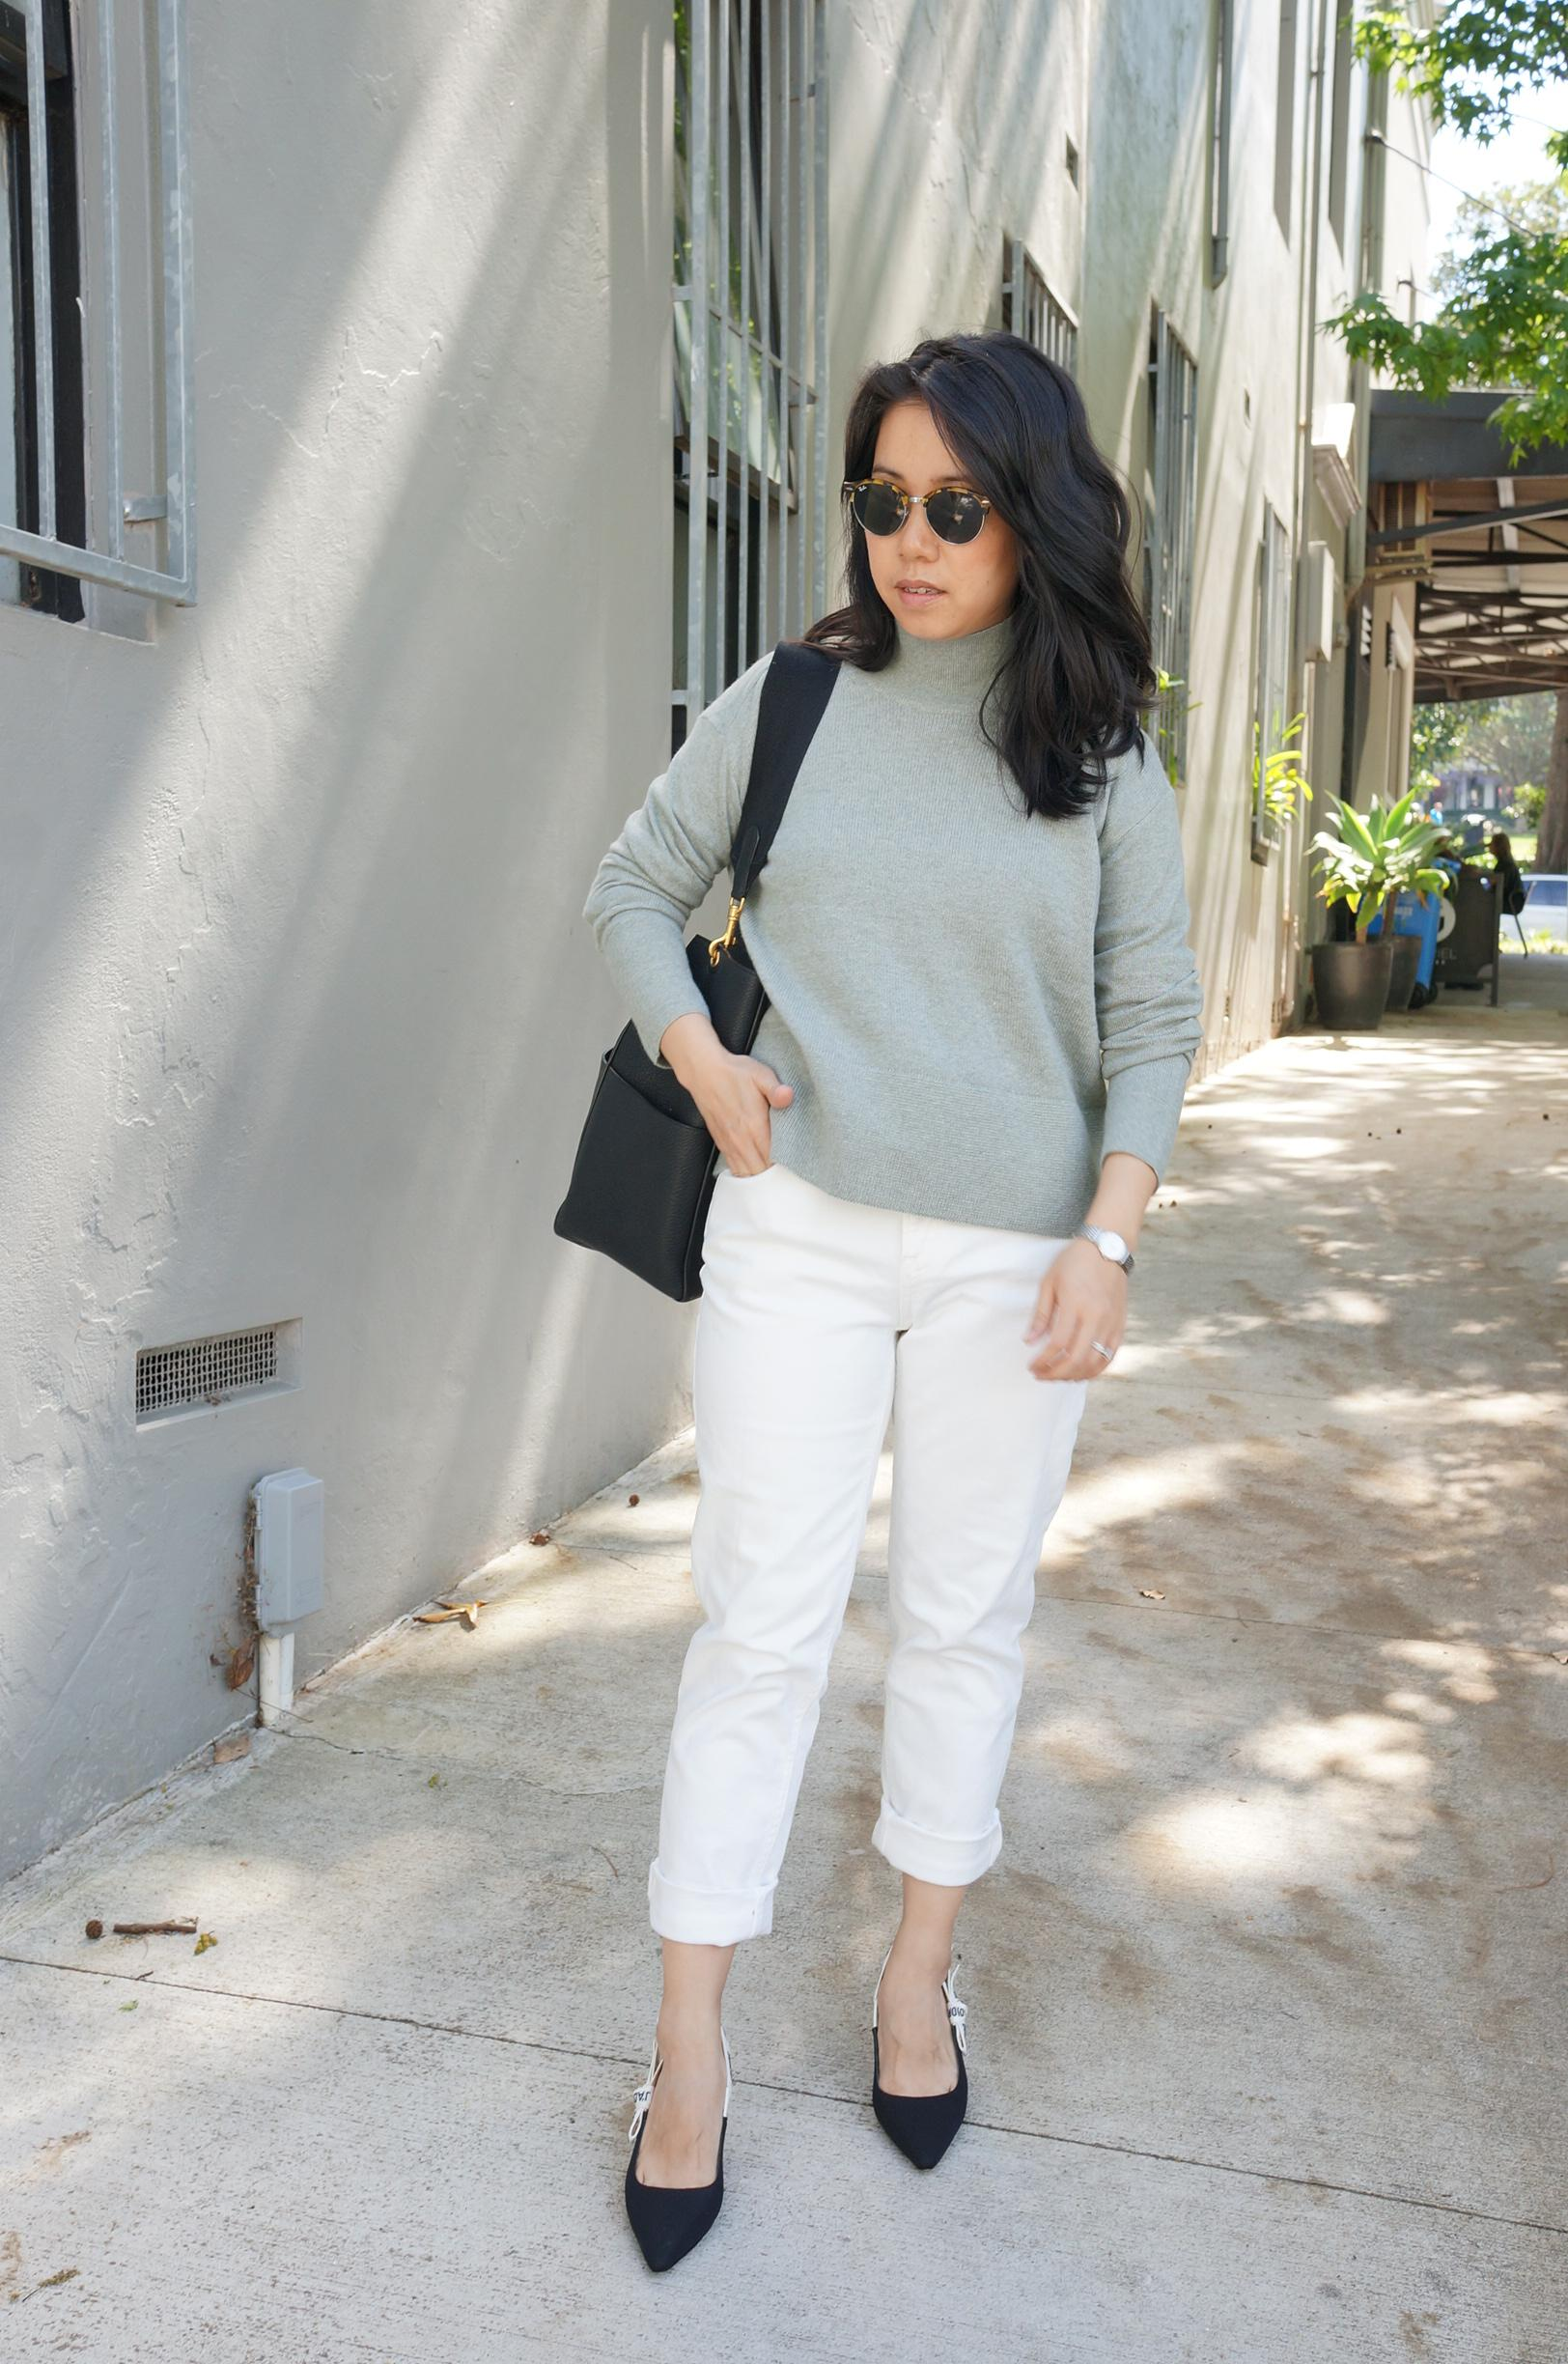 everlane sage cashmere knit featuring outfit styled with white jeans, celine sangle bag and j'adior slingbacks